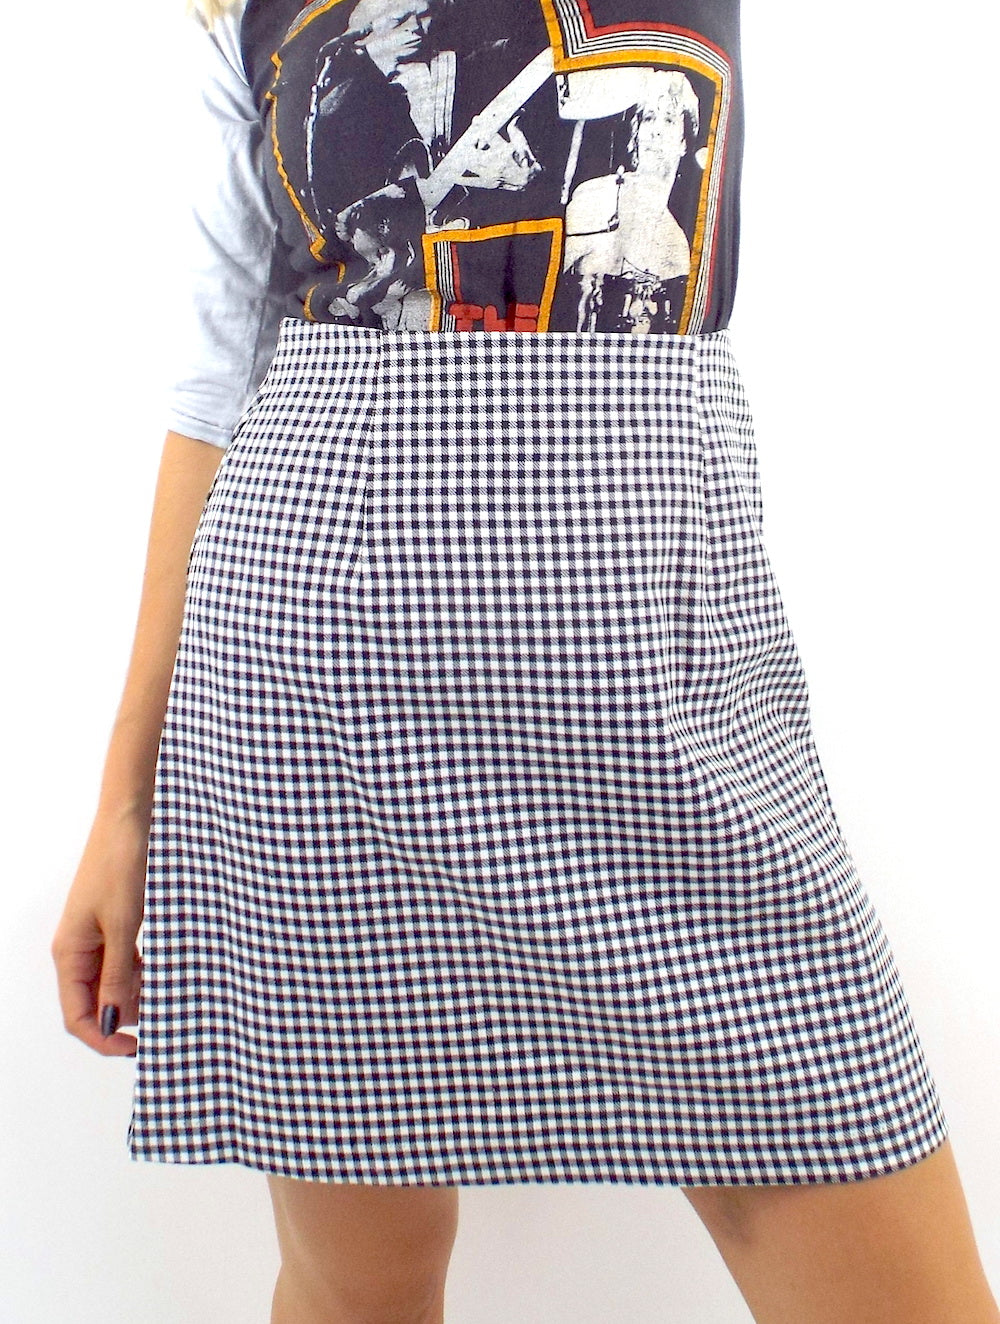 Vintage 90s High-Waist A-Line Gingham Print Skirt -- Size Medium